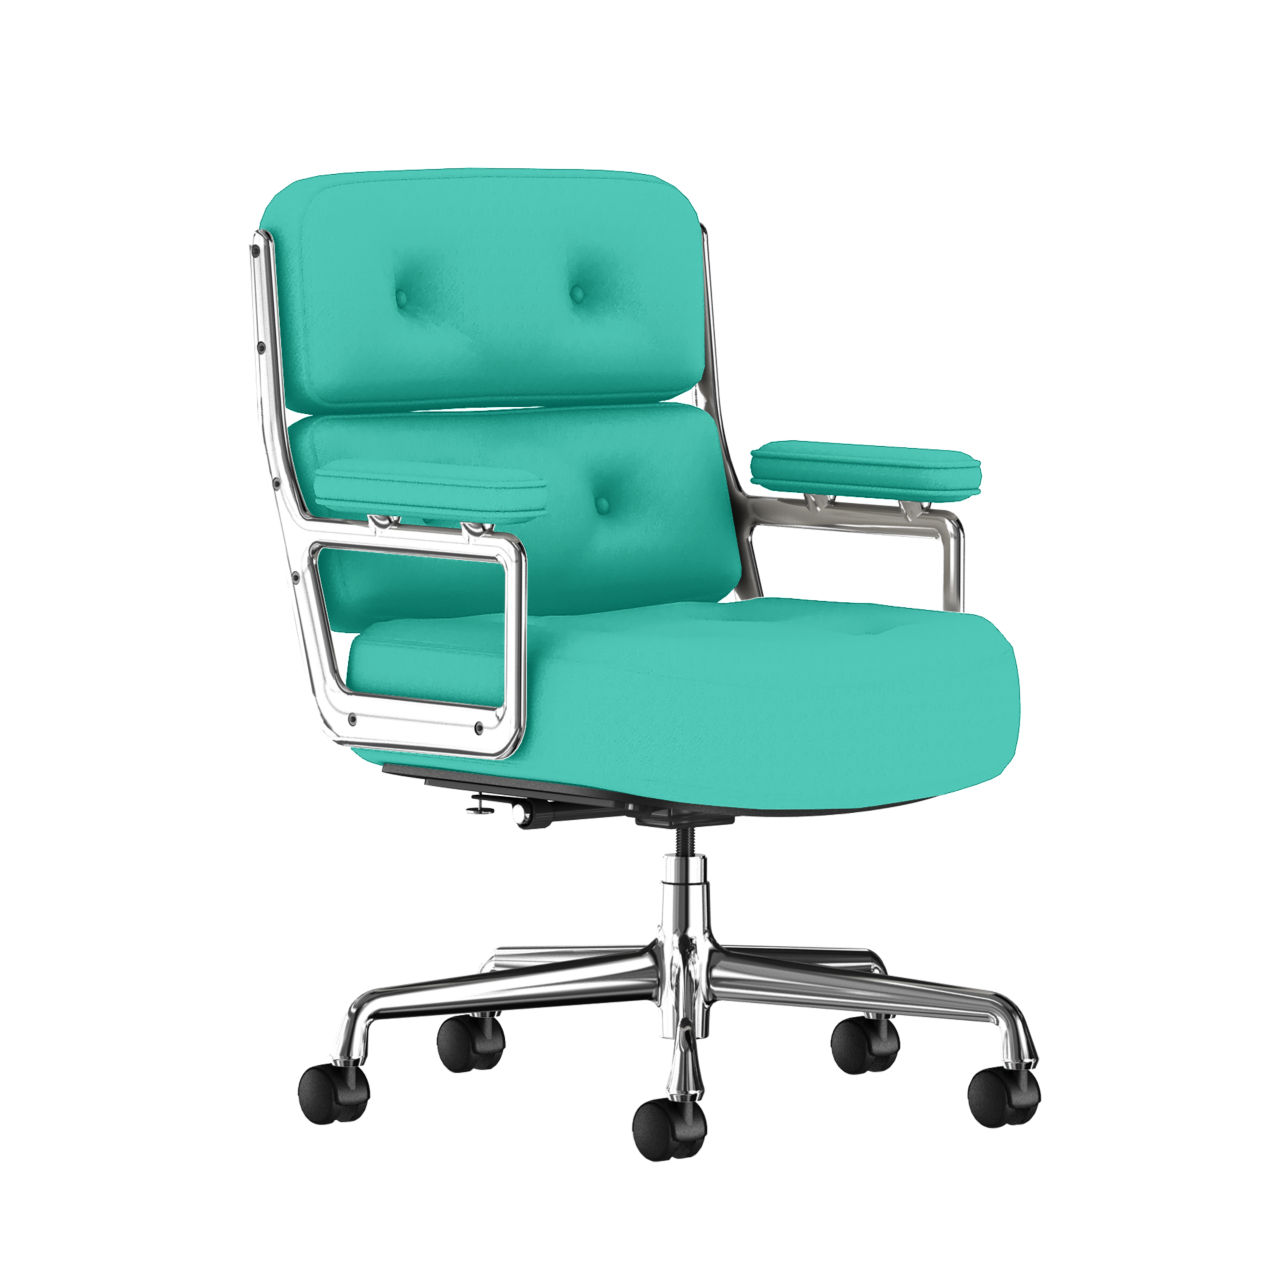 Eames Executive Work Chair Fabric in Aqua Green by Herman Miller